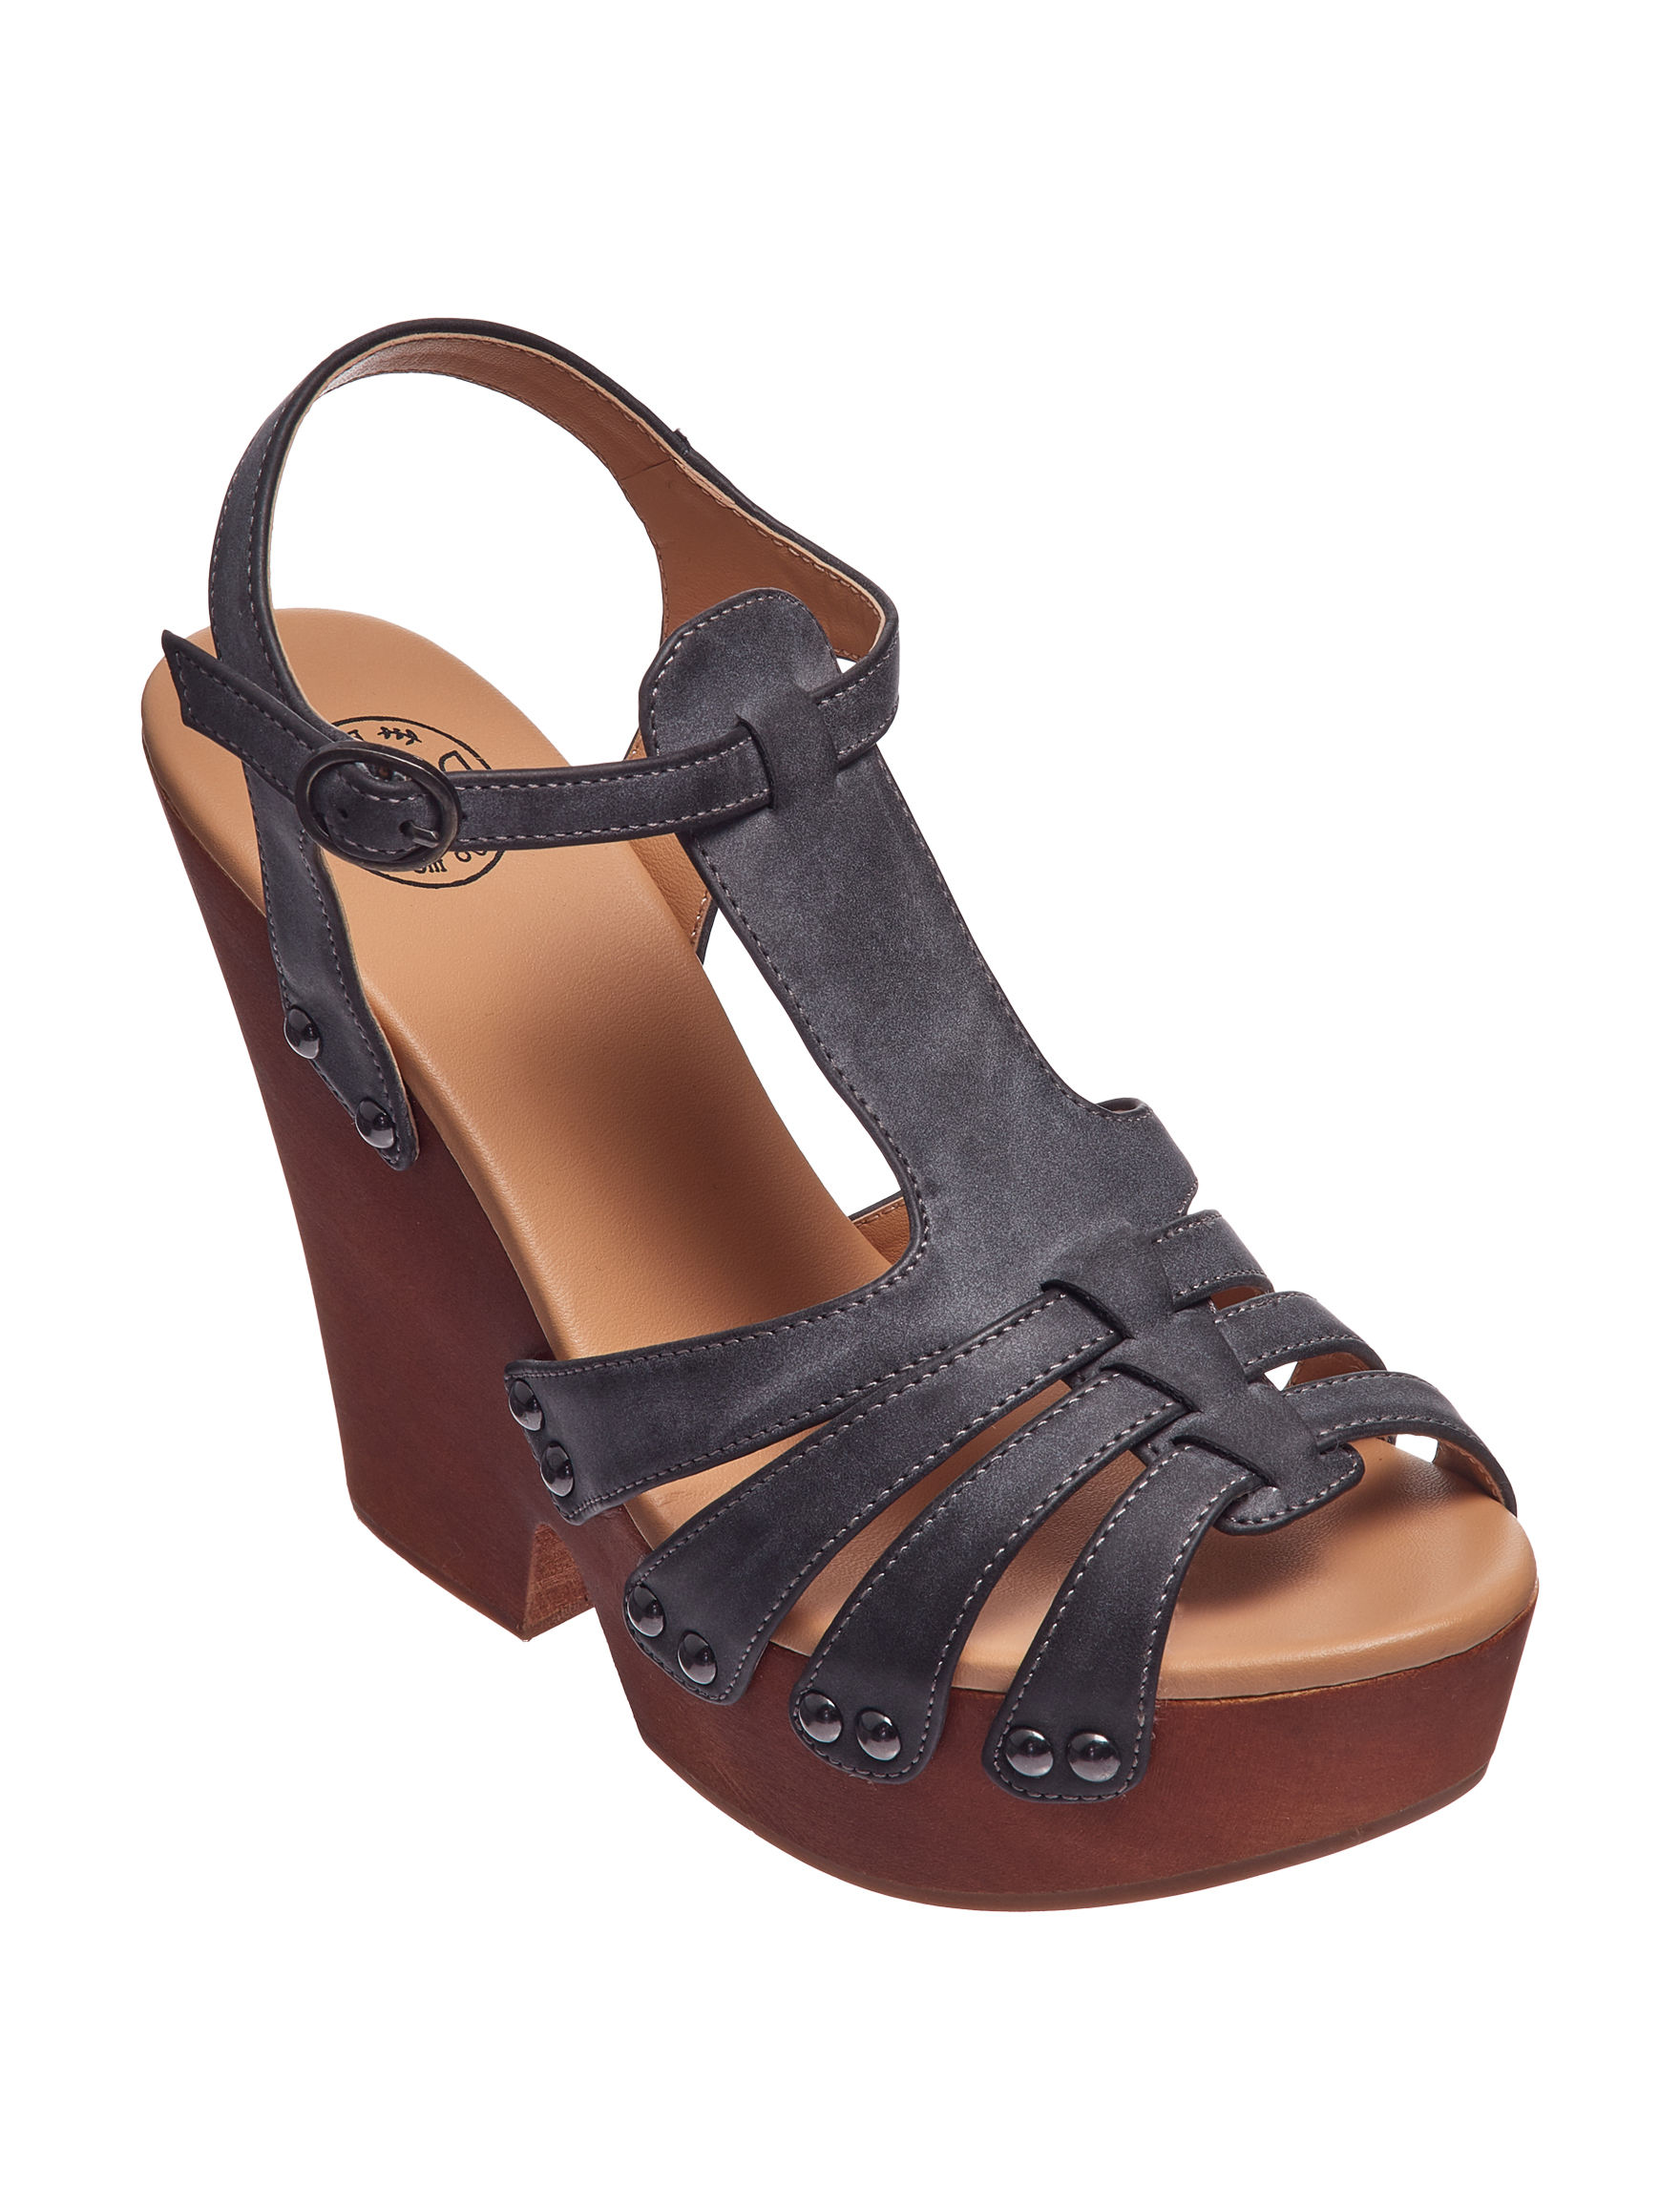 Dolce by Mojo Moxy Black Heeled Sandals